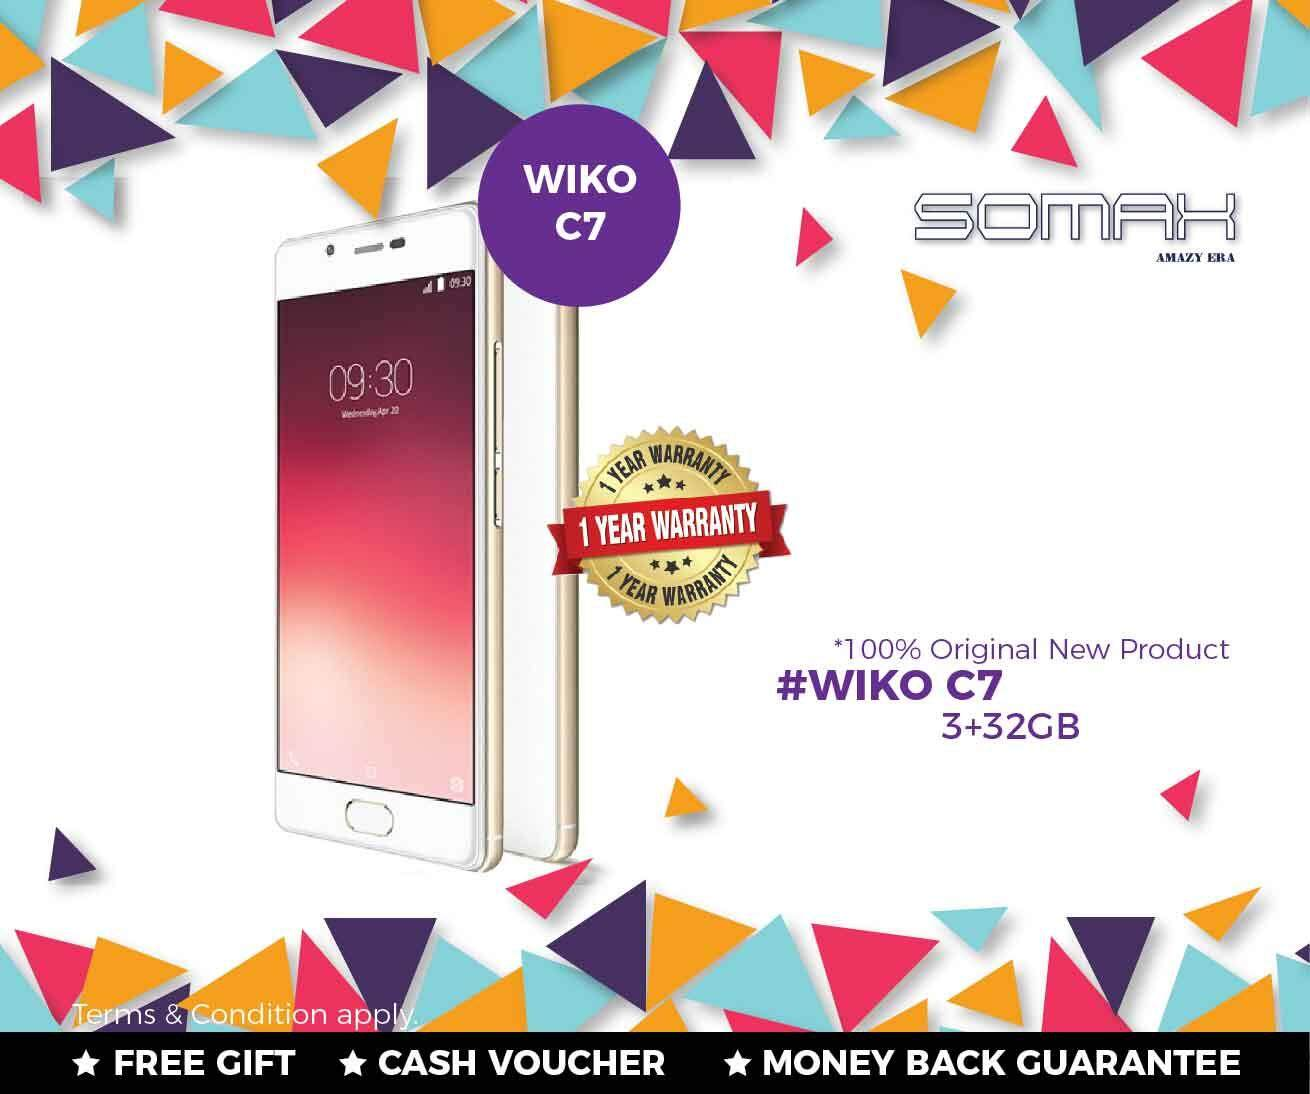 Wiko Mobiles Tablets Price In Malaysia Best Voucher 3 1gb C7 Chipset Mediatek Quad Core 32gb Only White